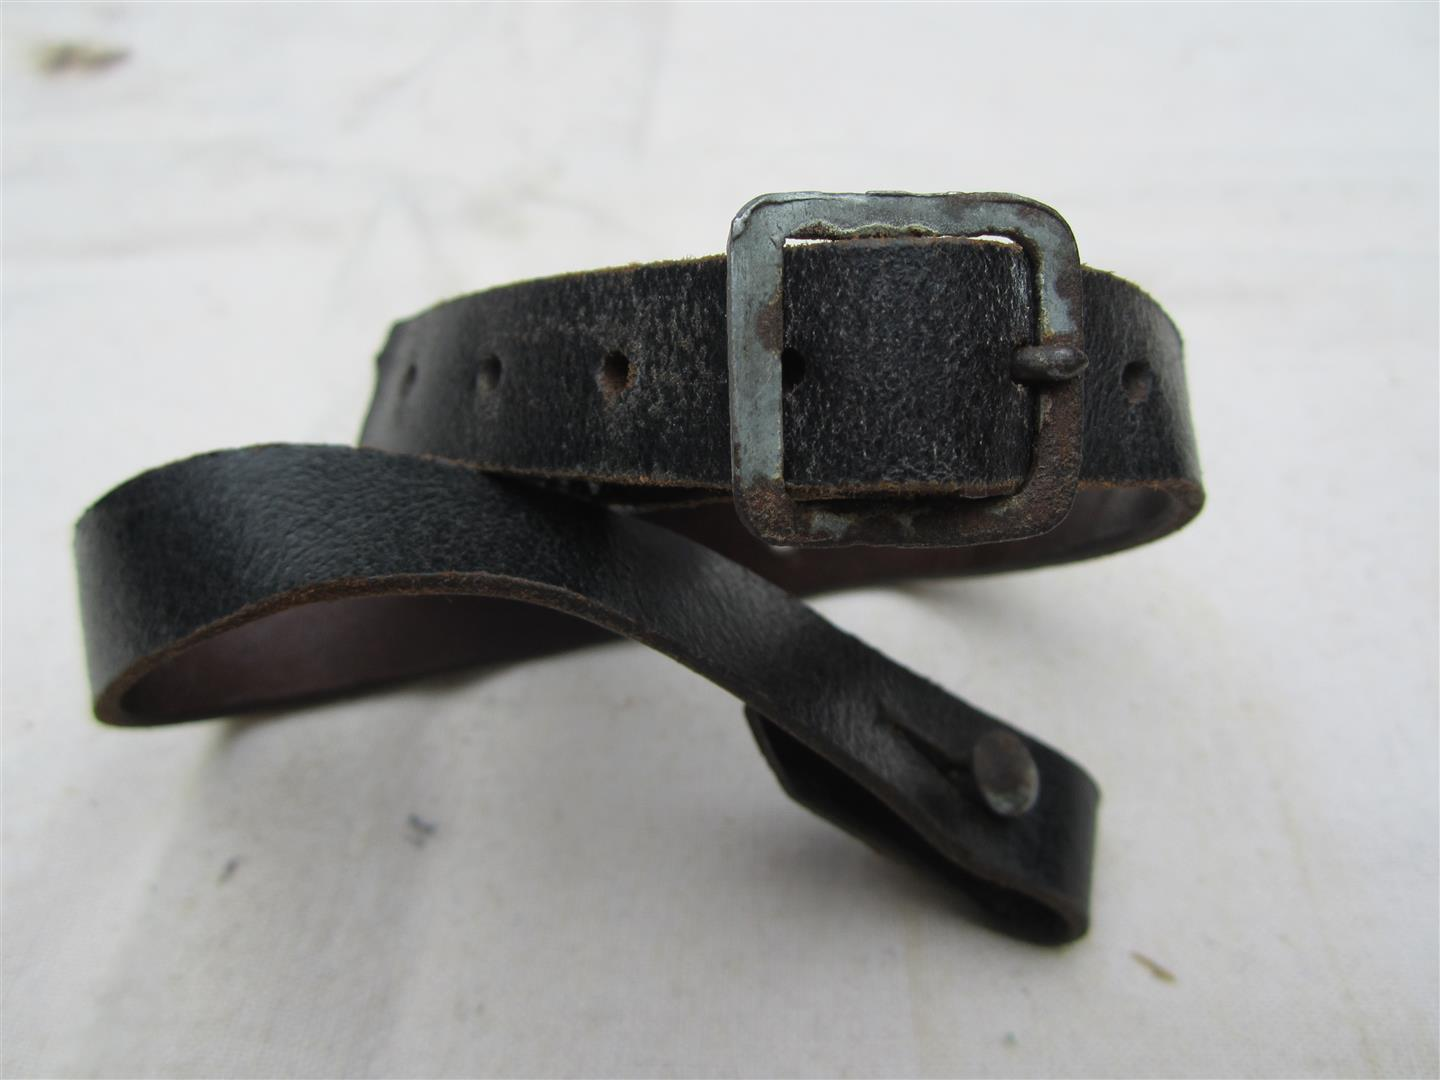 WW2 WH Helmet Chinstrap - Original